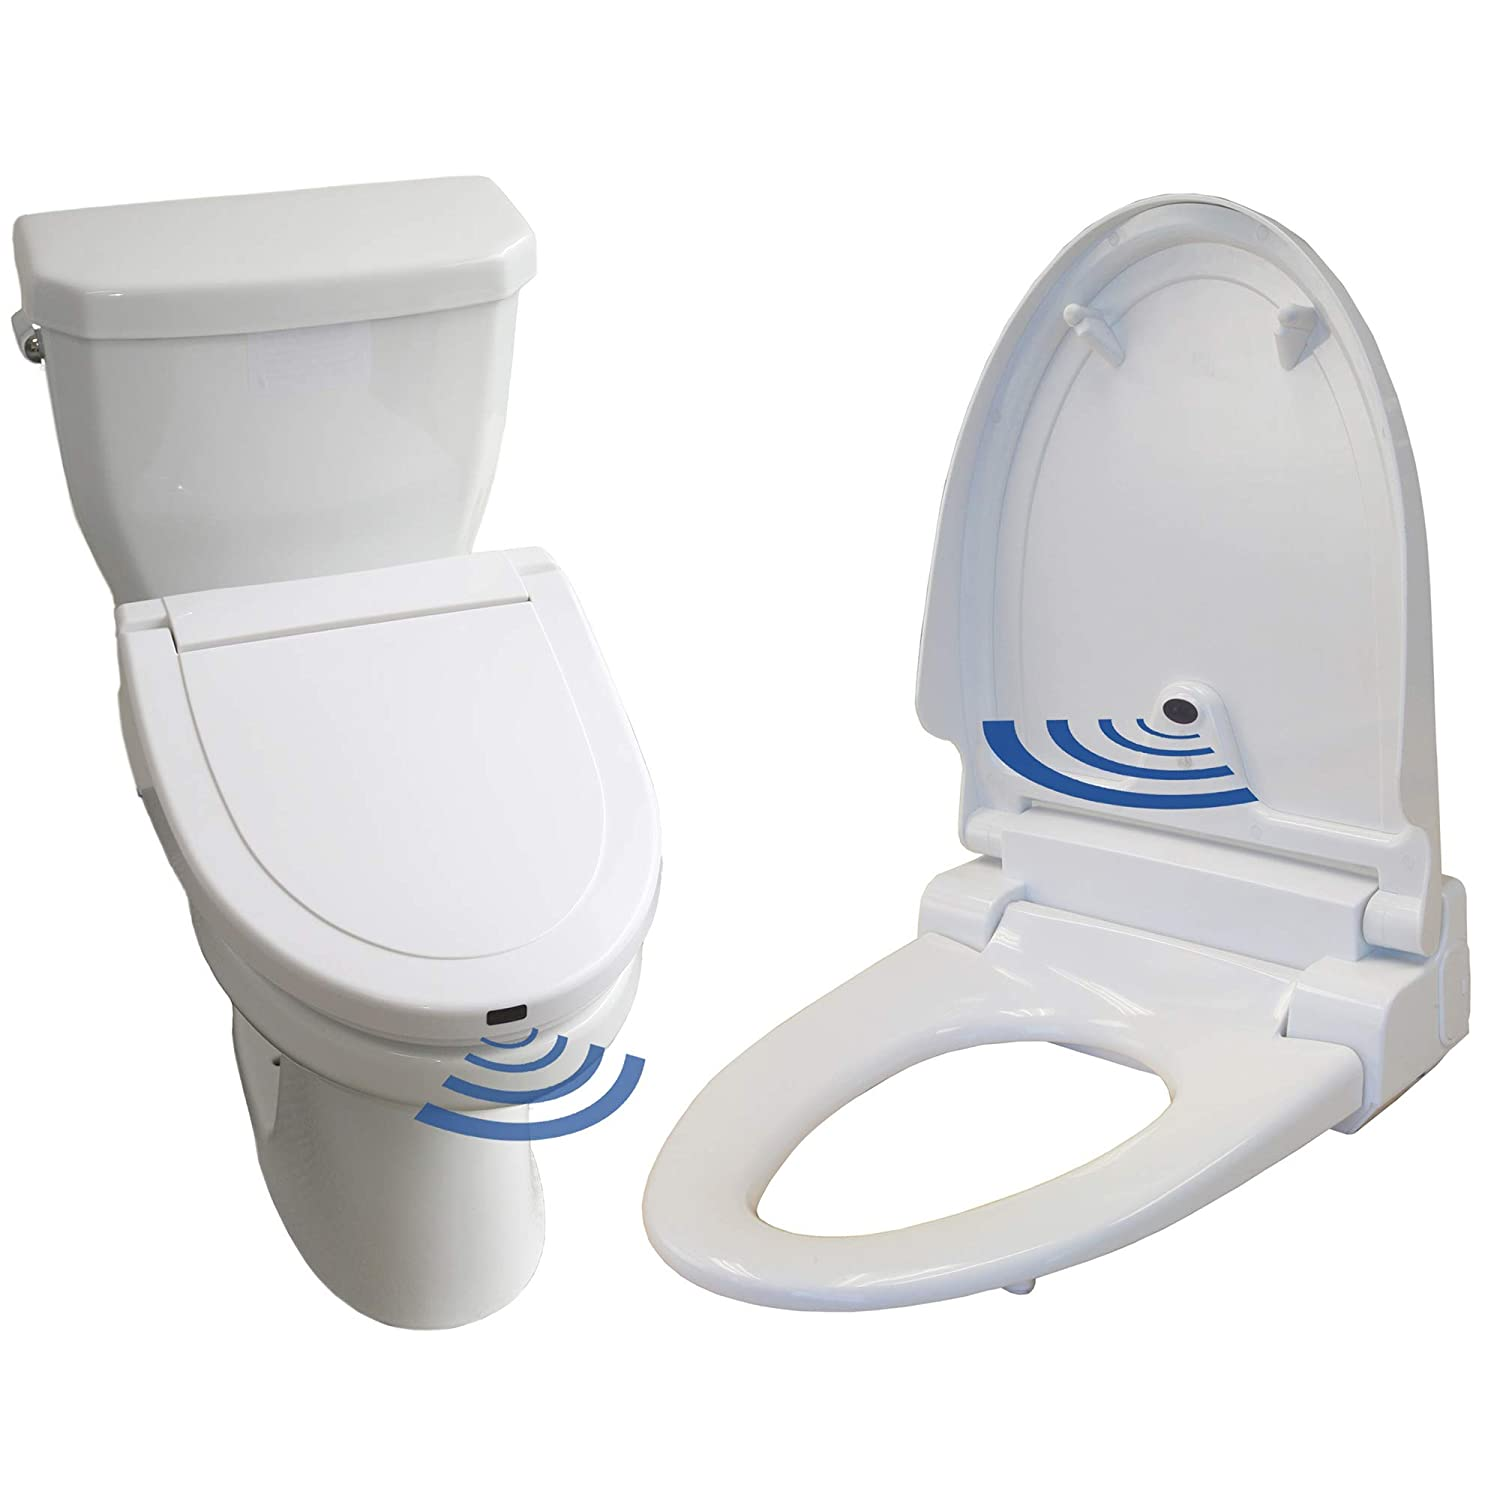 Enjoyable Itouchless Touch Free Sensor Controlled Automatic Toilet Seat Elongated Model Off White Lamtechconsult Wood Chair Design Ideas Lamtechconsultcom